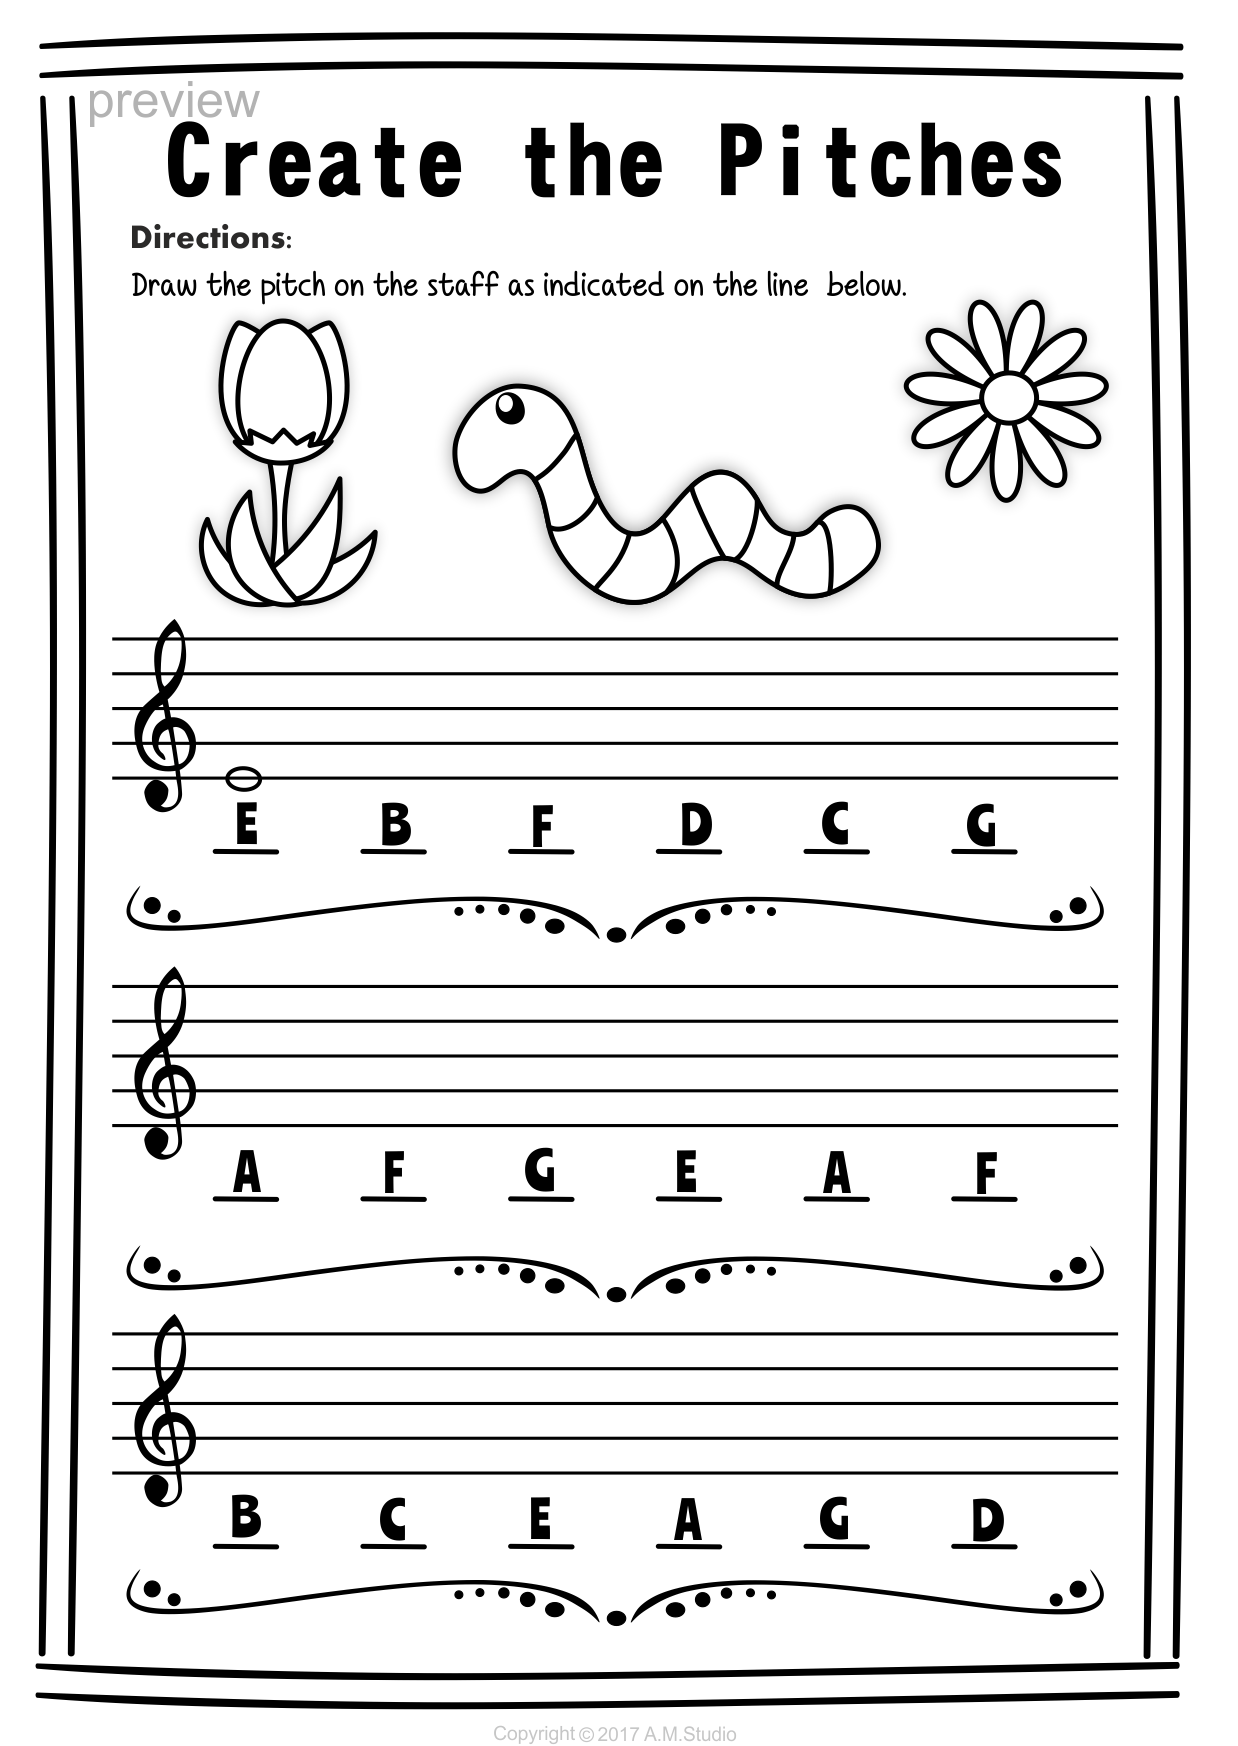 Worksheet Bass Clef Notes Worksheet Worksheet Fun Worksheet Study Site